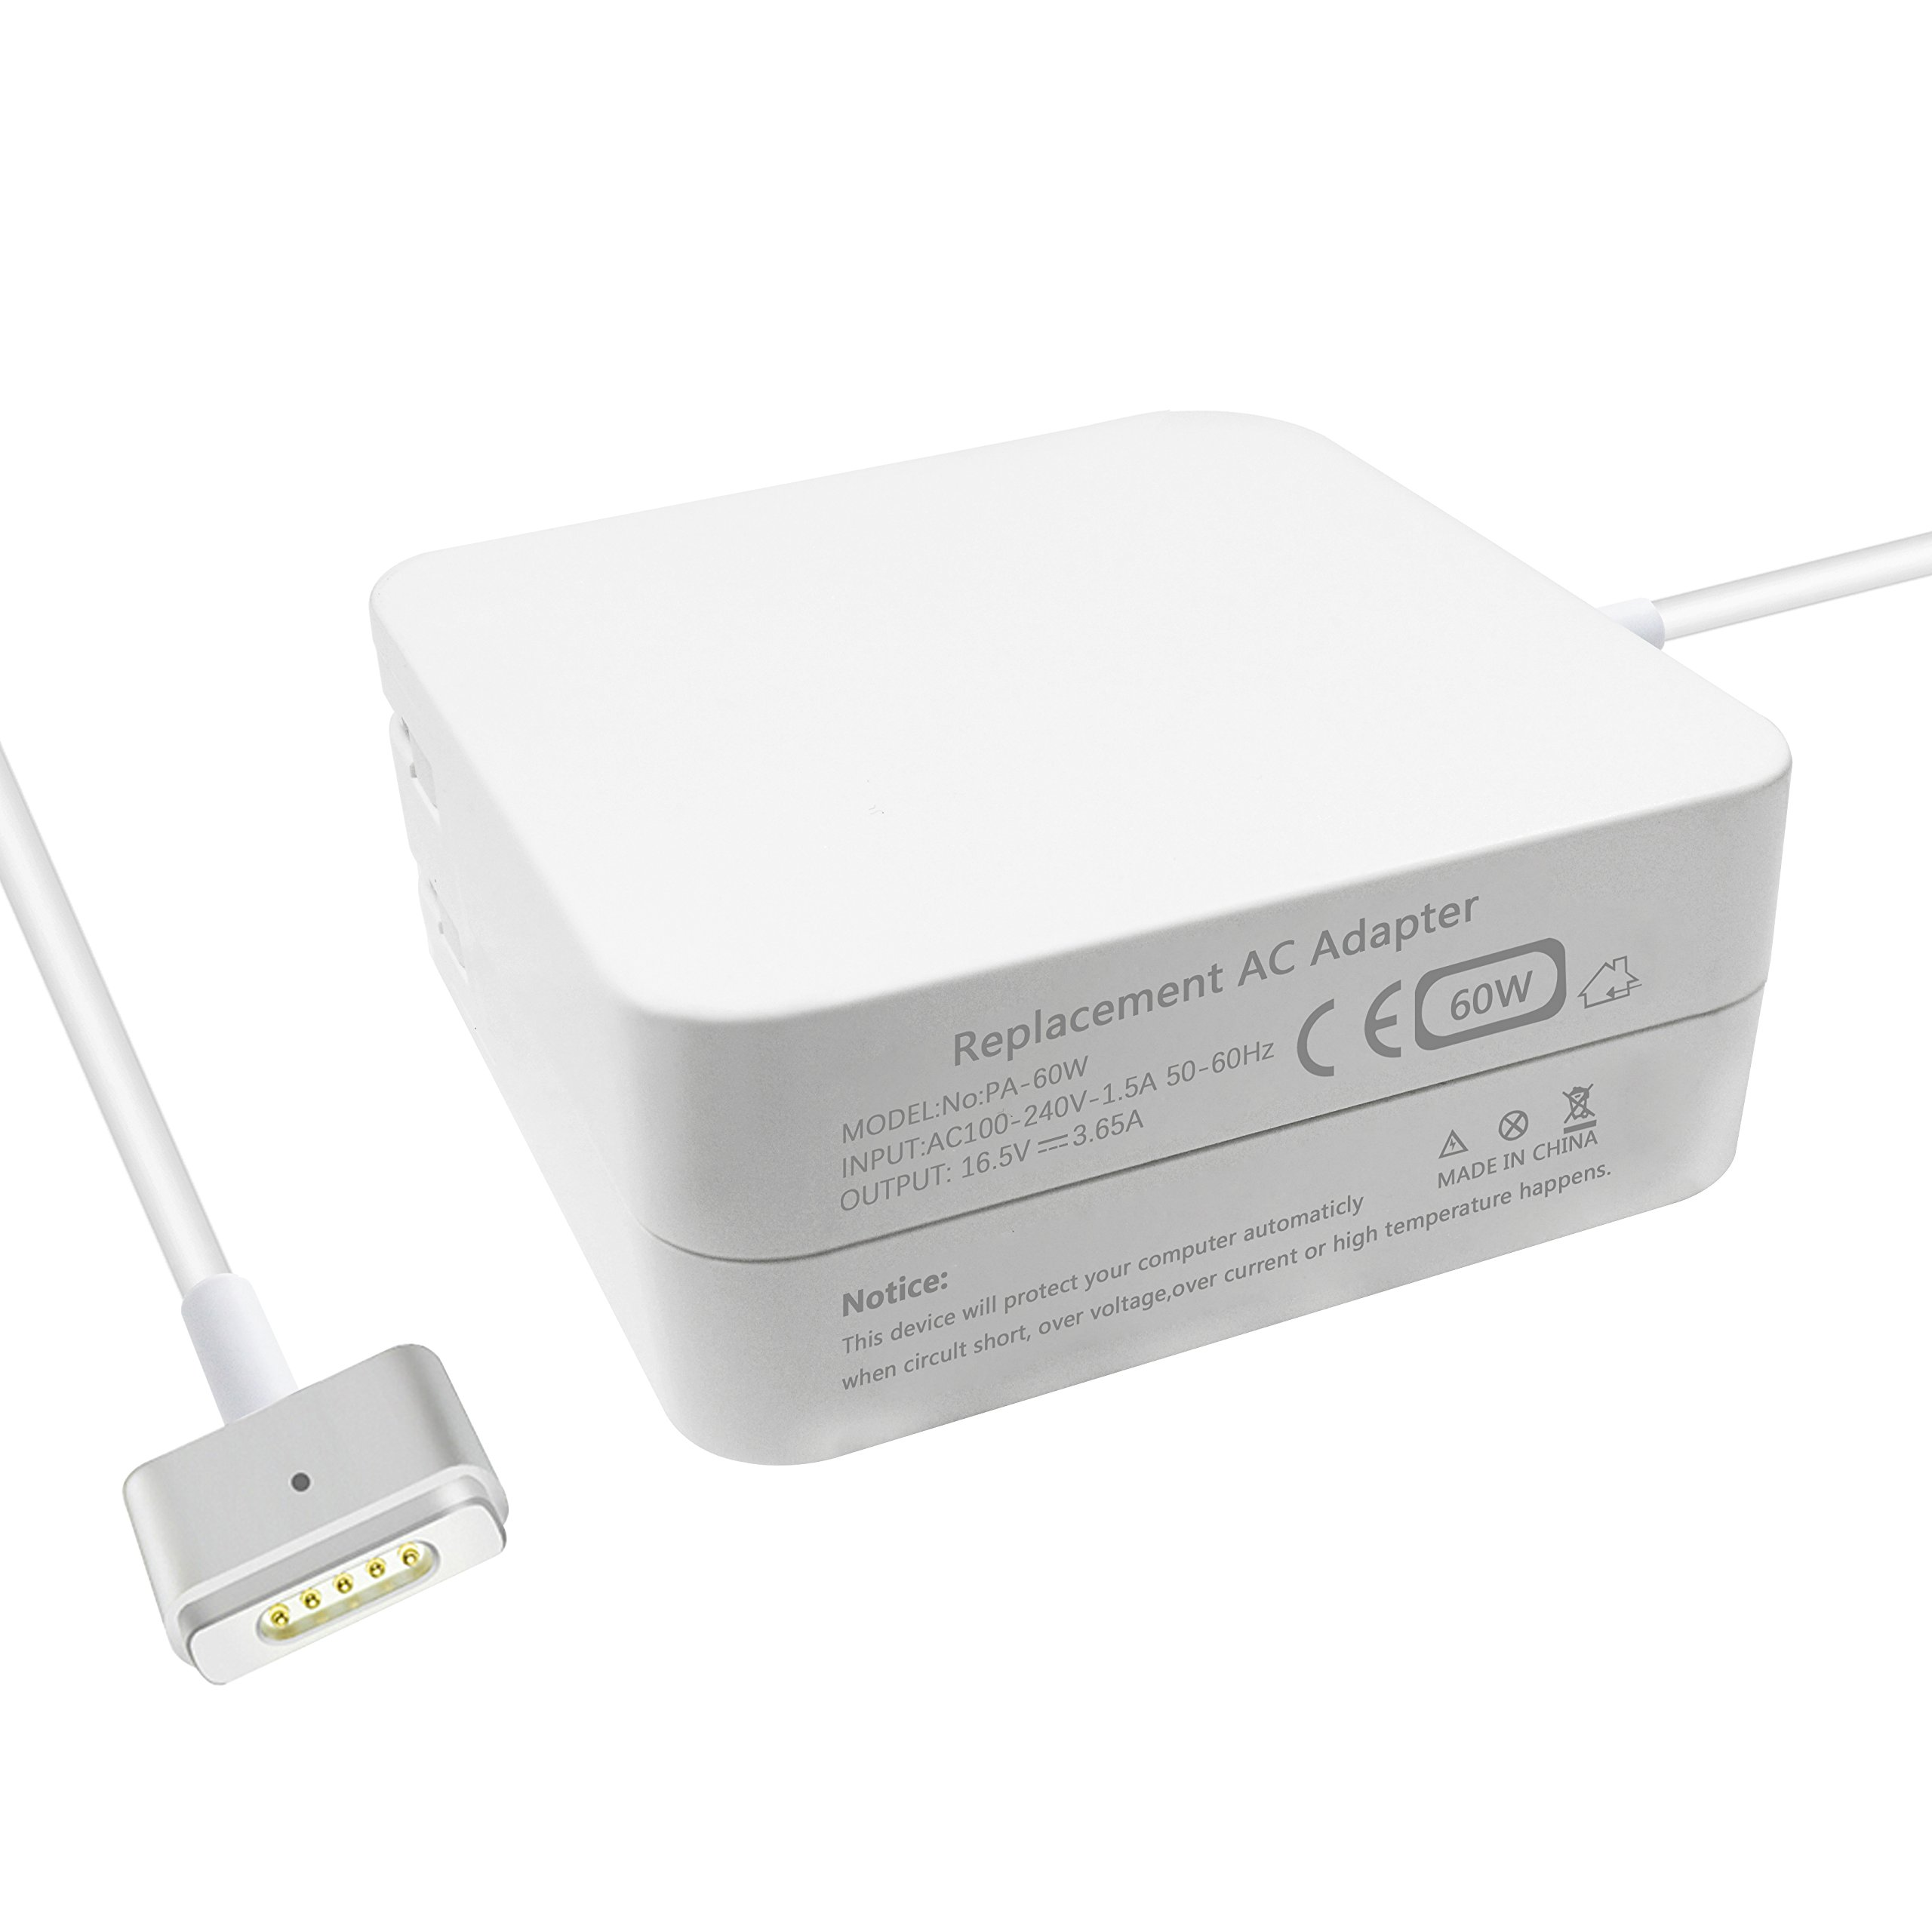 MacBook pro Charger, and Compatible with 45W, Aonear 60W Magsafe 2 T-Tip Replacement Adapter for 13 inch MacBook Pro Charger- After Late 2012 by aonear (Image #6)